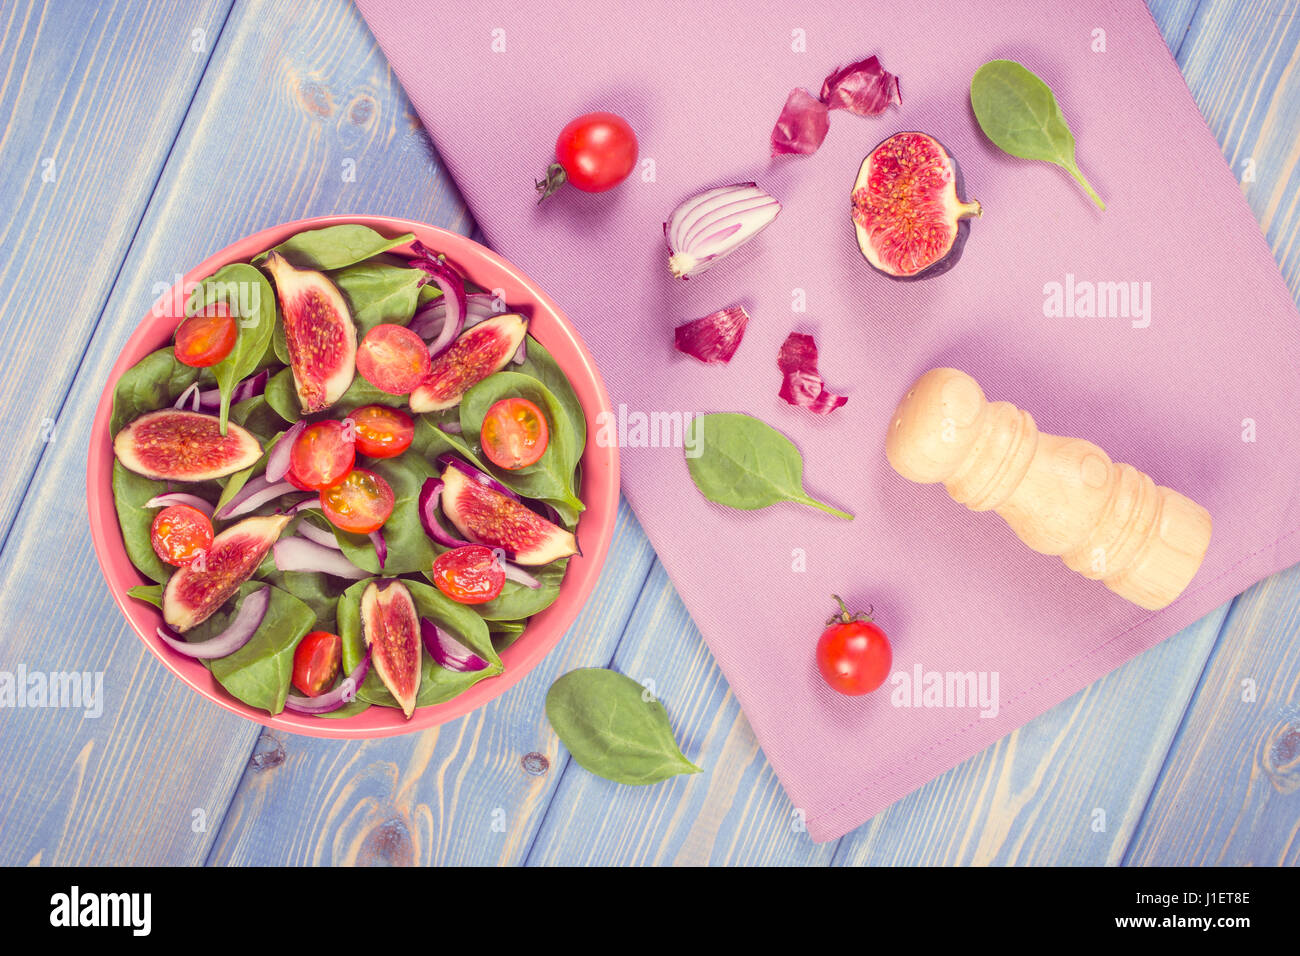 Vintage photo, Fresh prepared fruit and vegetable salad in glass ...